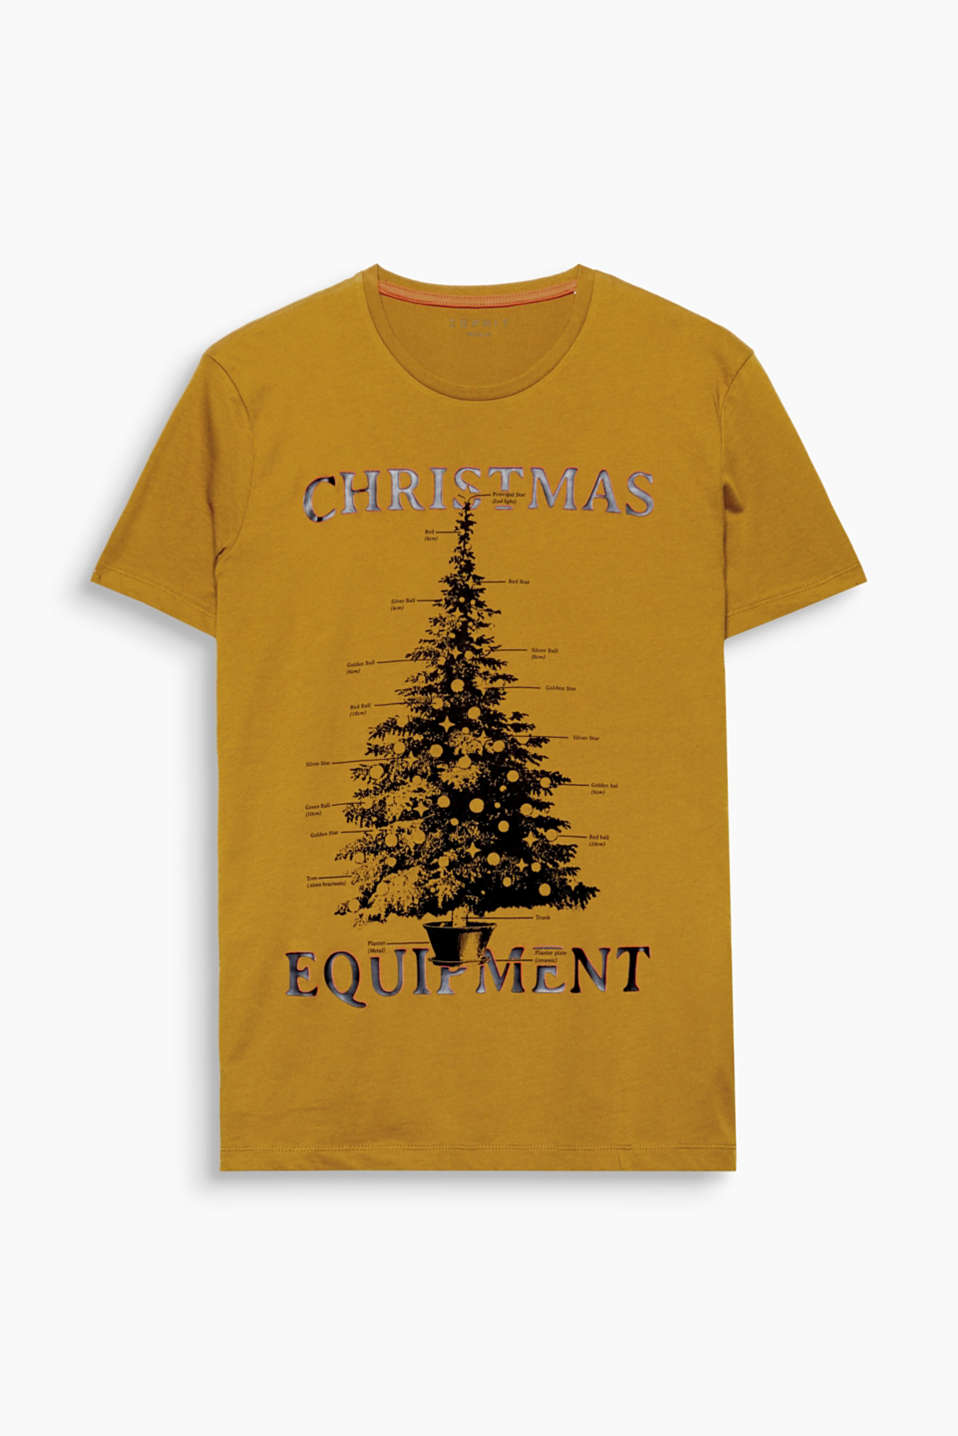 Ho ho ho! You will love this T-shirt thanks to its atmospheric Christmas print.